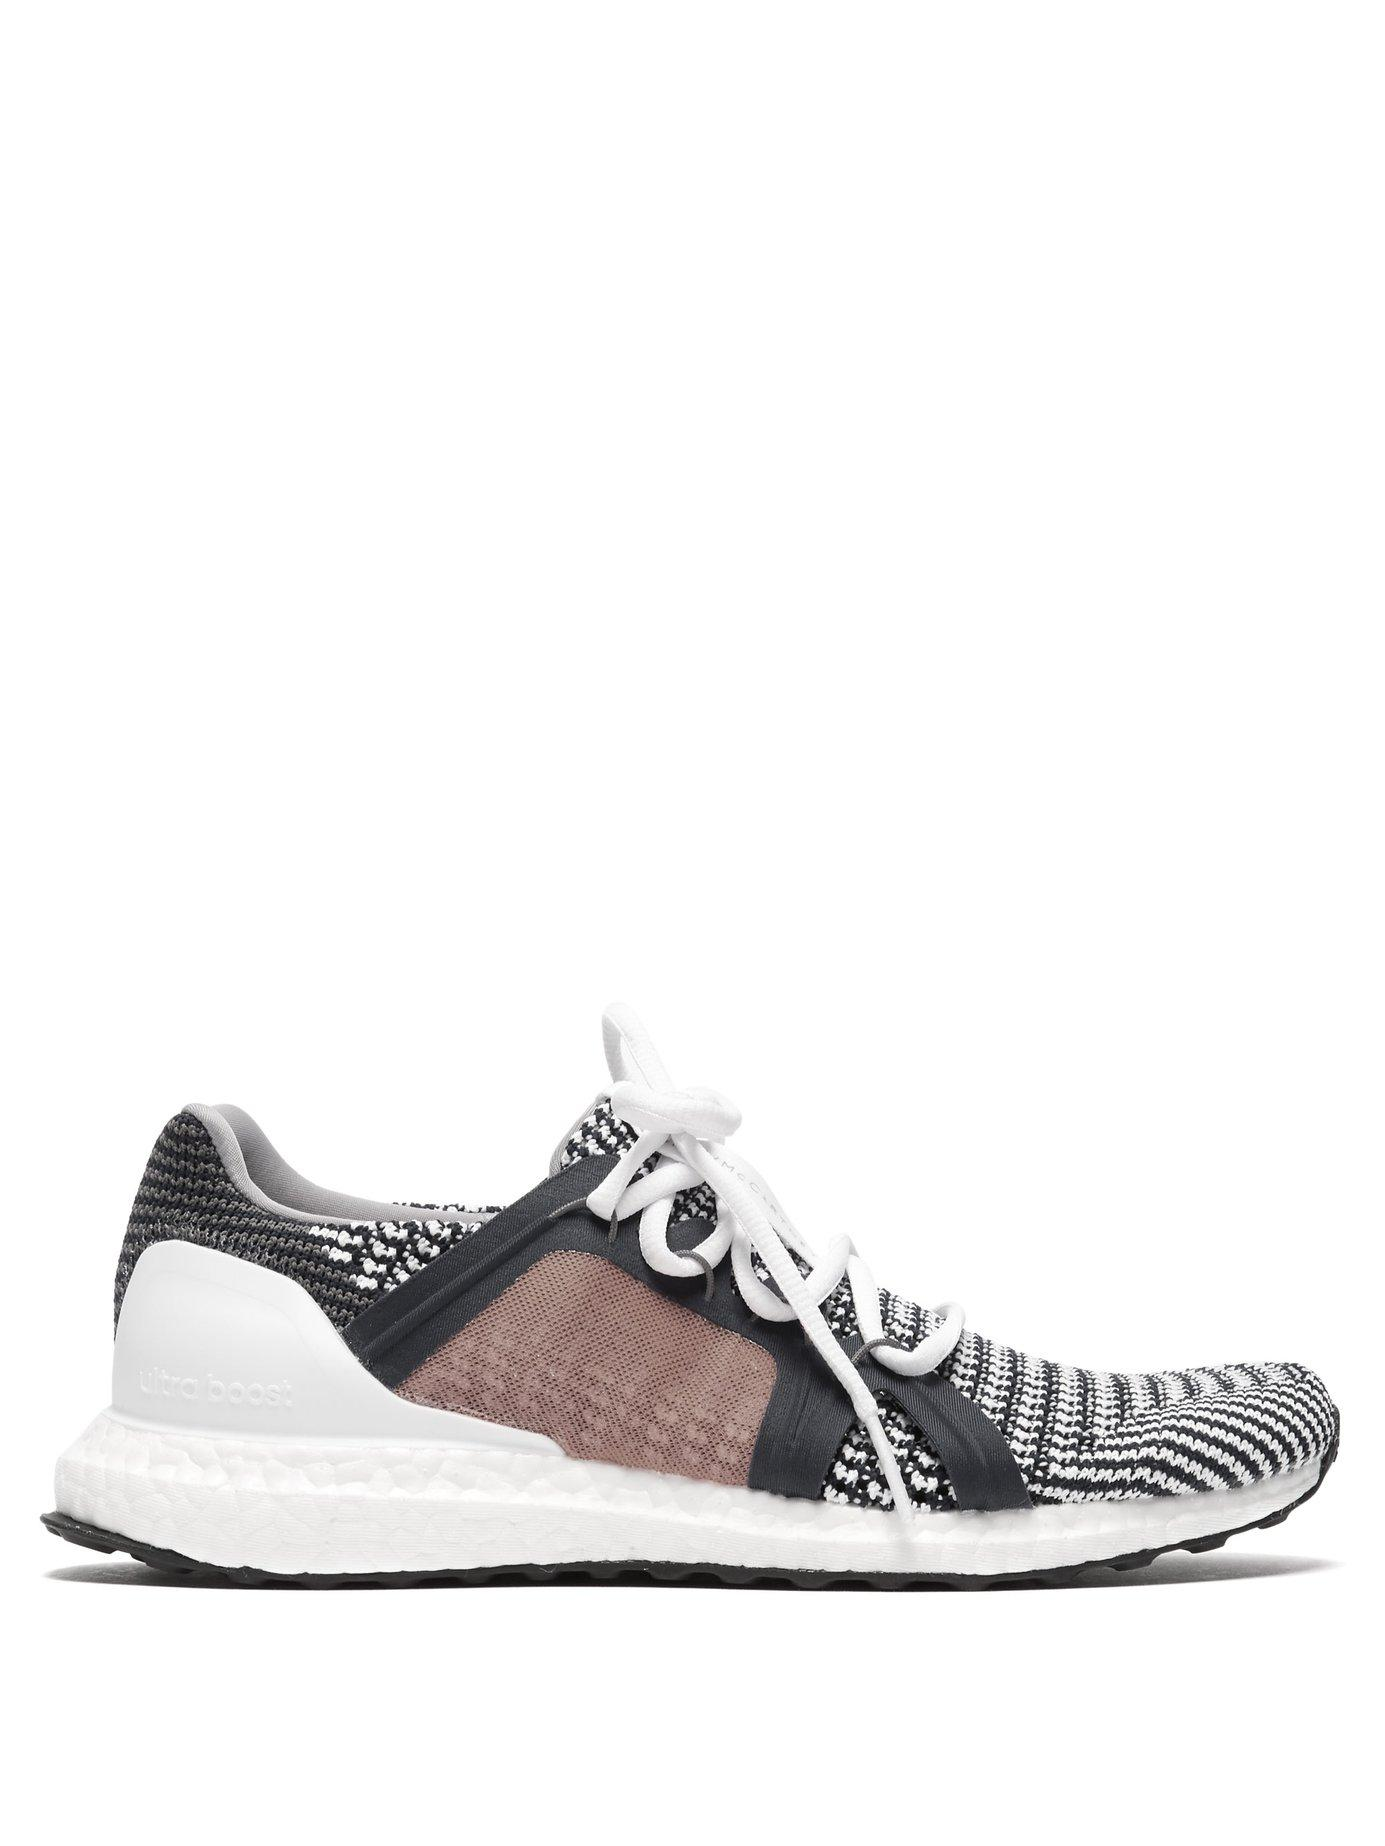 be7d9b175994b adidas By Stella McCartney. Women s Ultraboost S Low Top Mesh Trainers